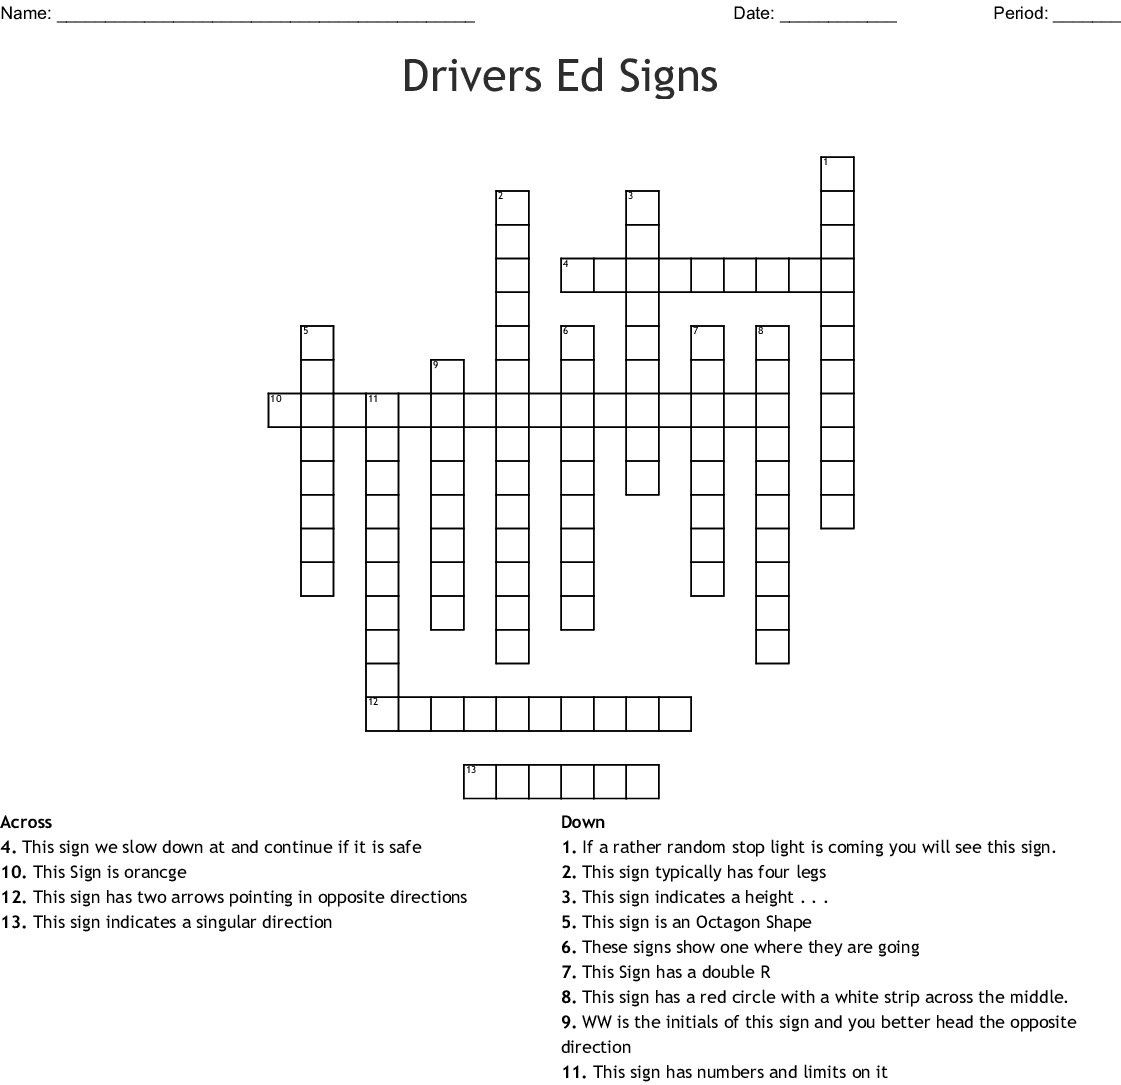 Chapter 2 Signs Signals And Roadway Markings Crossword